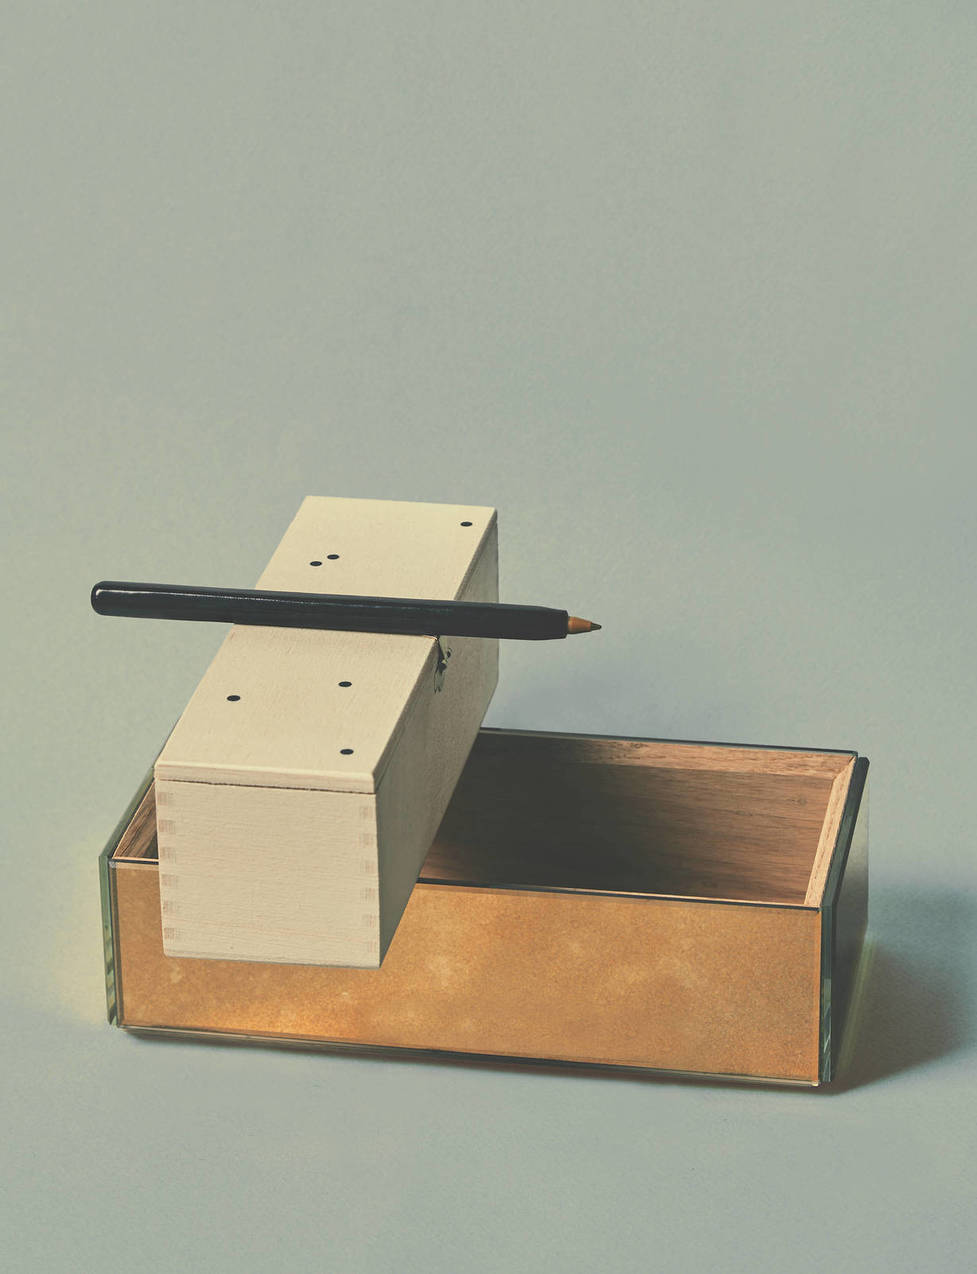 """You can't possibly note all the rhetorical information embedded in a particular arrangement; it is virtually limitless,"" writes Koren. ""But you can try. The more variety, subtlety, and complexity you unearth, the better."" Pictured:   Il Bussetto Pen Cover  ,  Sigmar Italic Pepper Mill by Michael Anastassiades   (in wooden presentation box),   Antique Mirror Container 9"